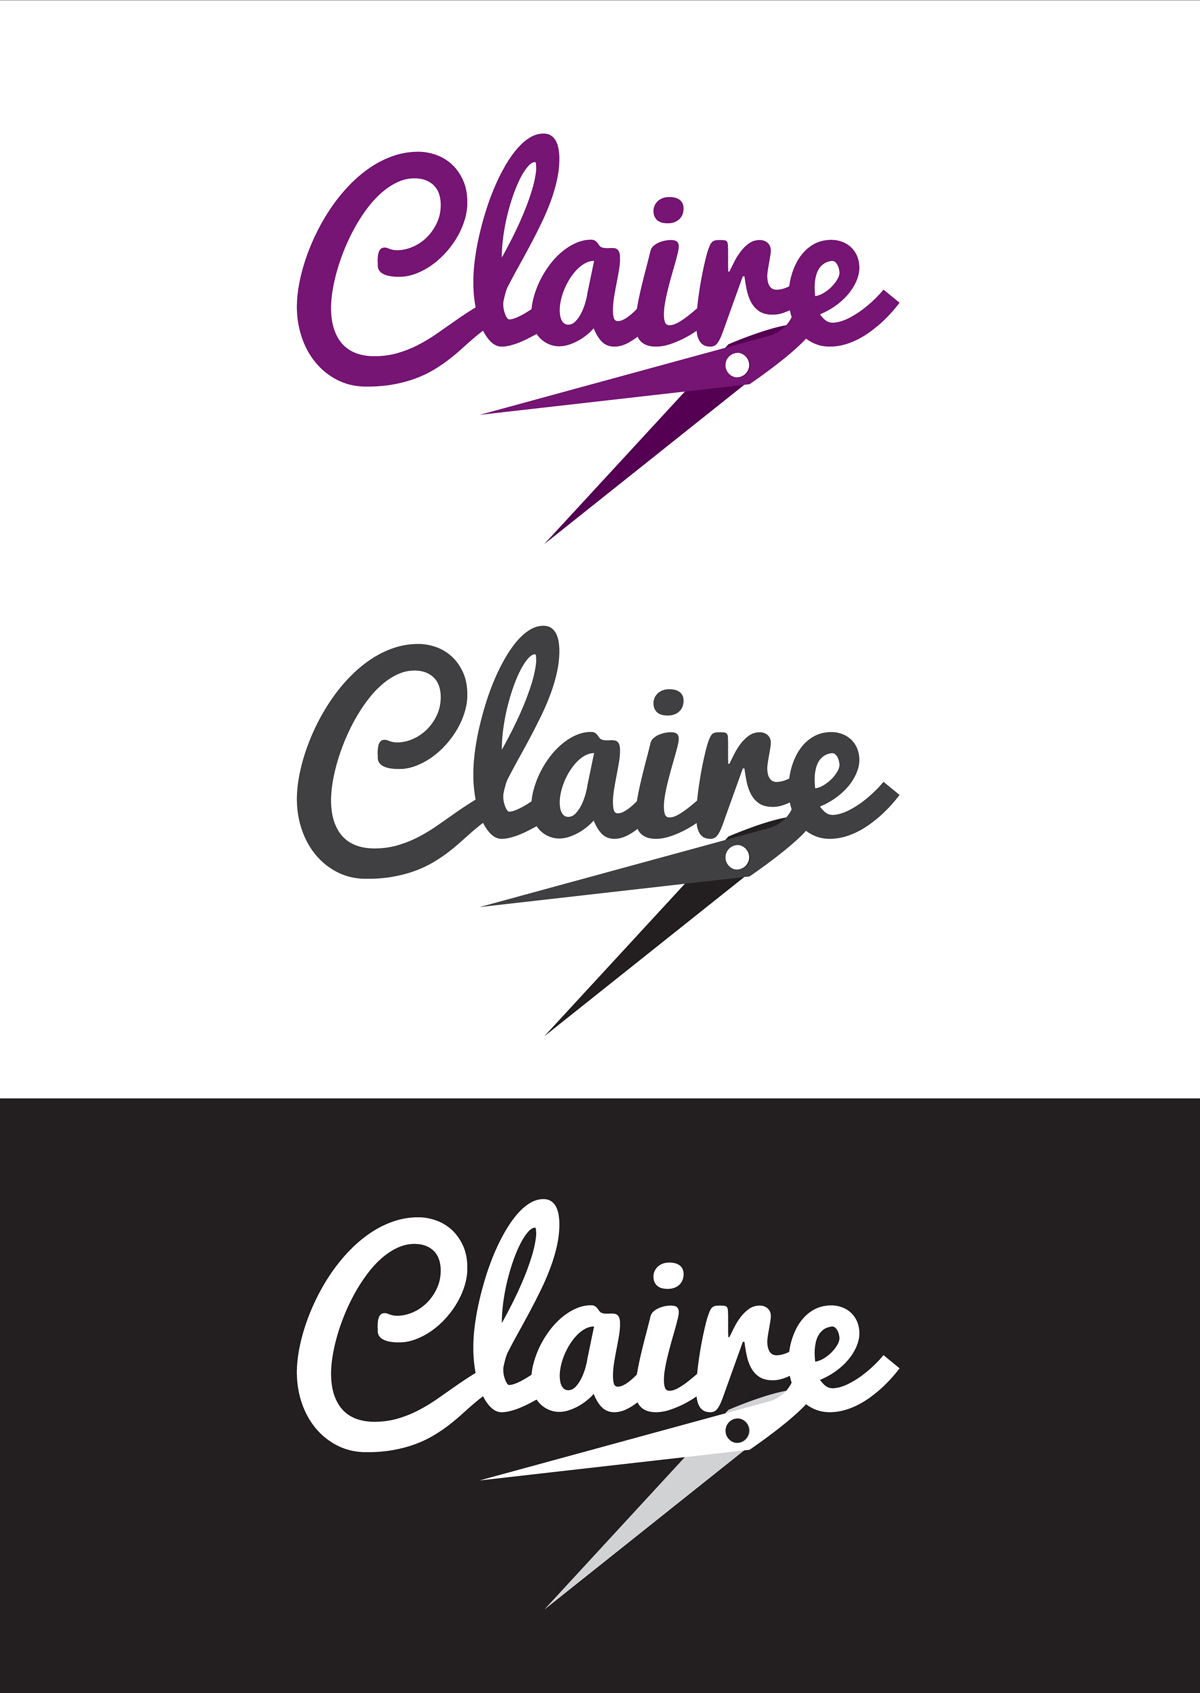 Logo design & options for different colour backgrounds